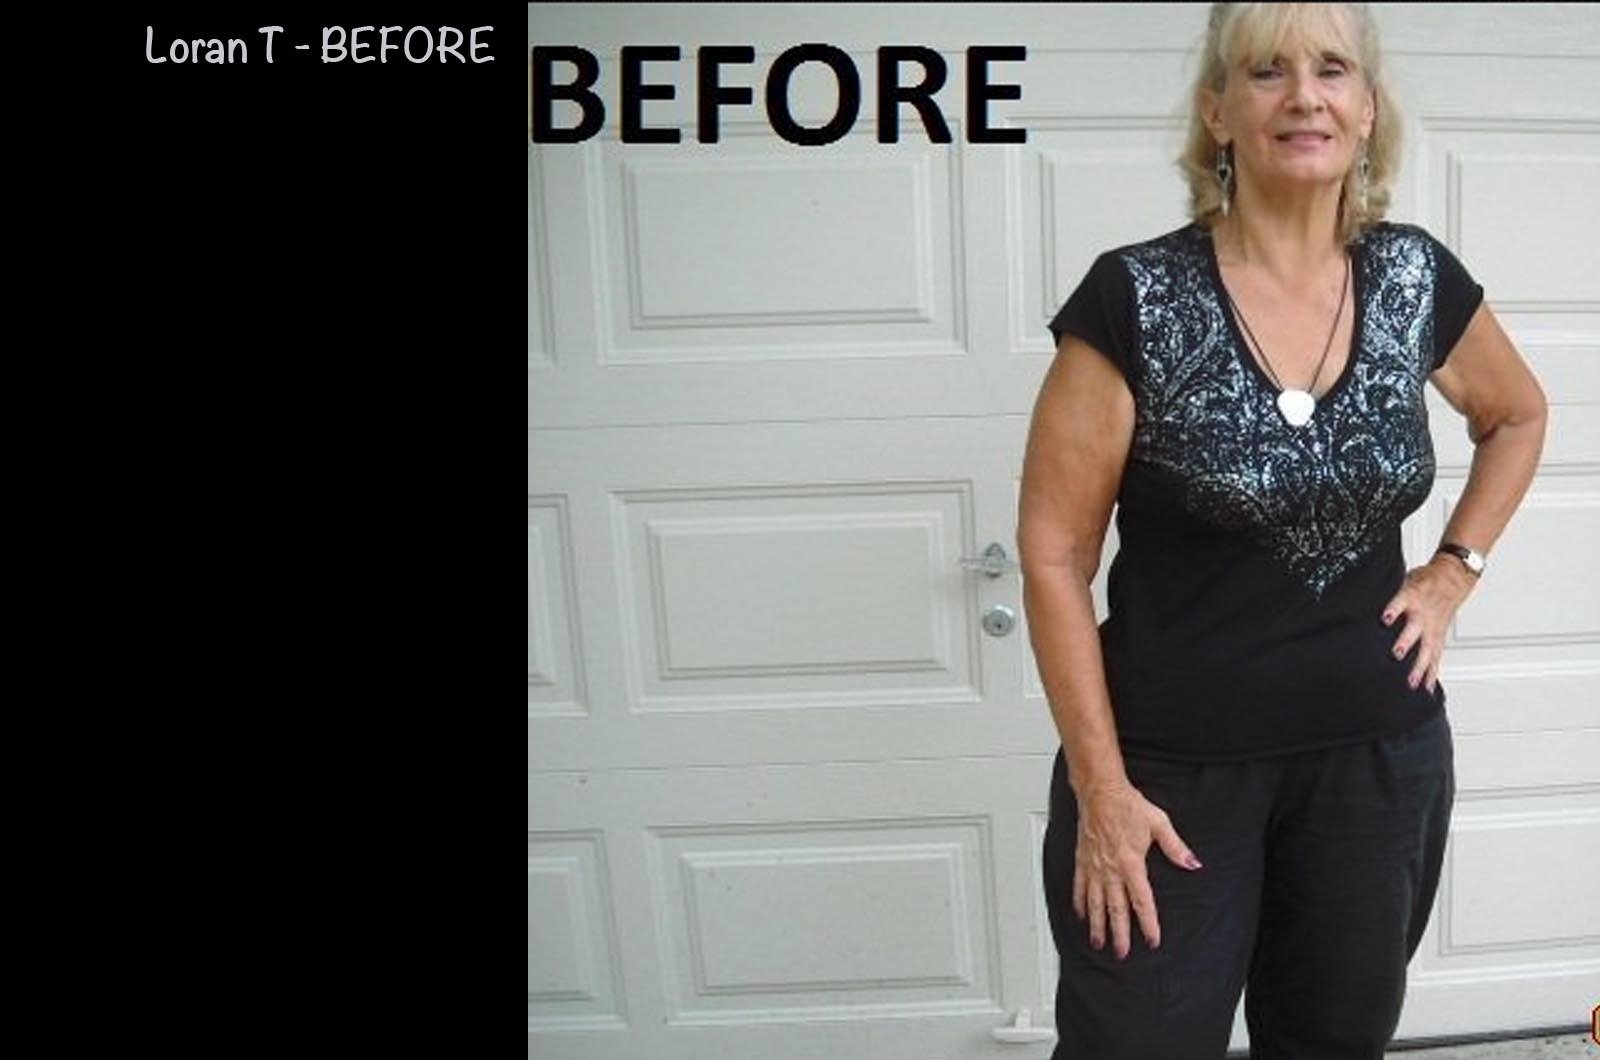 Weight Loss Testimonial - Loran T